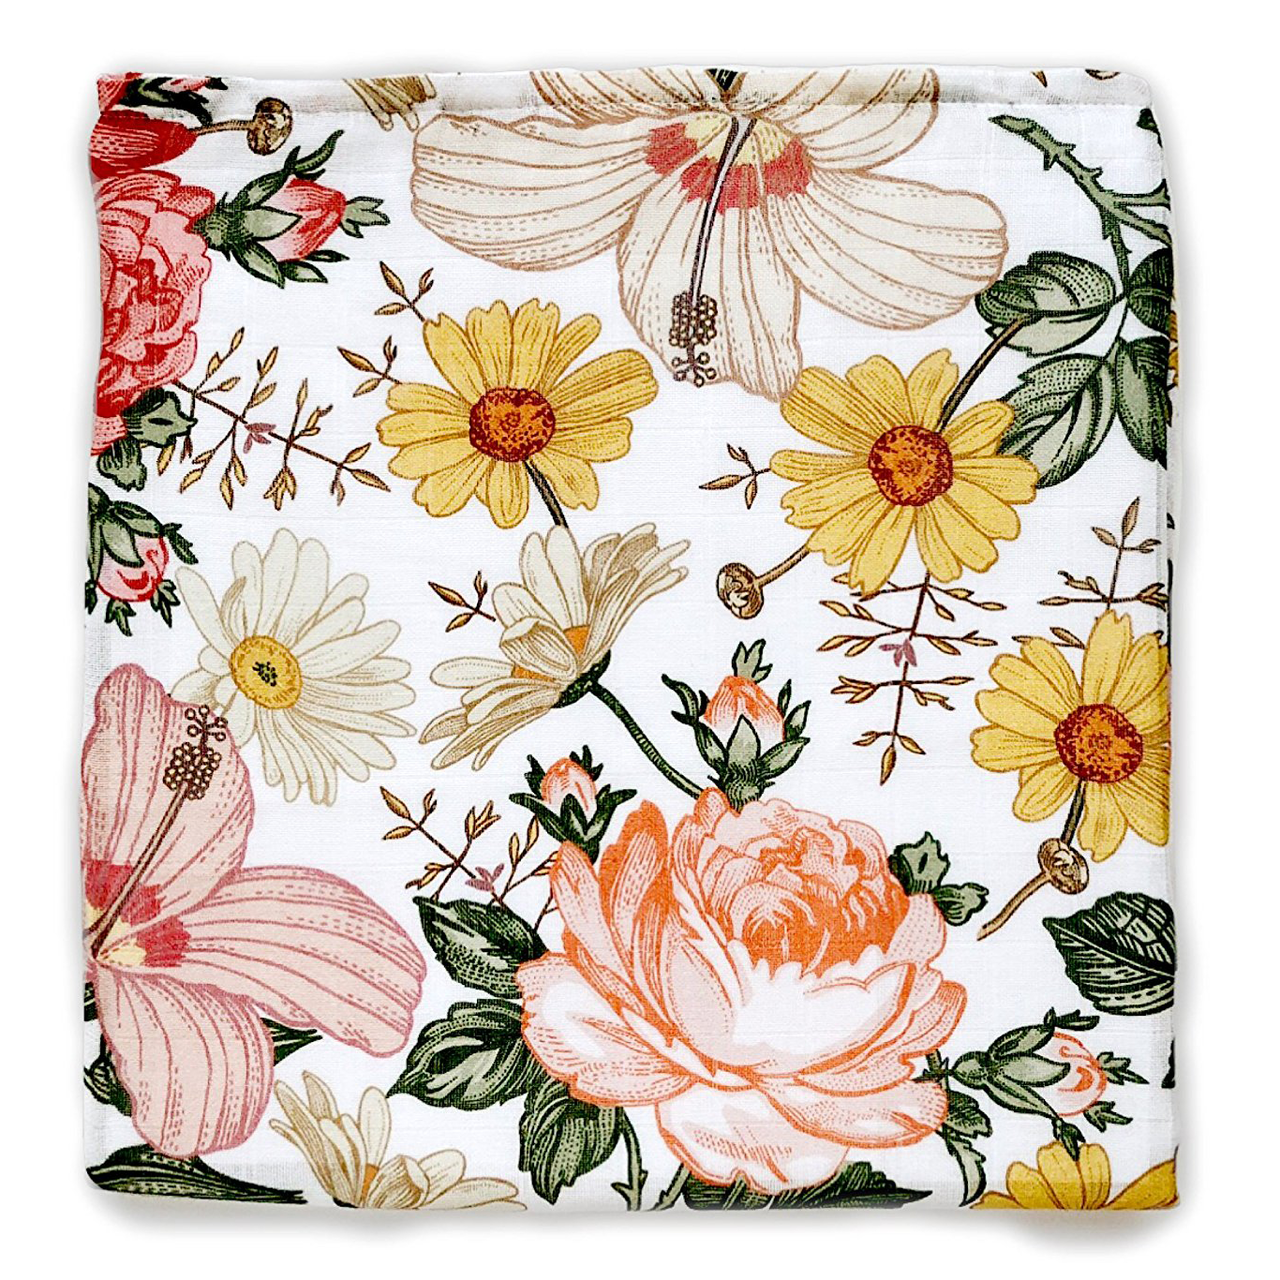 Antique Floral: Muslin Swaddle, Vintage Floral